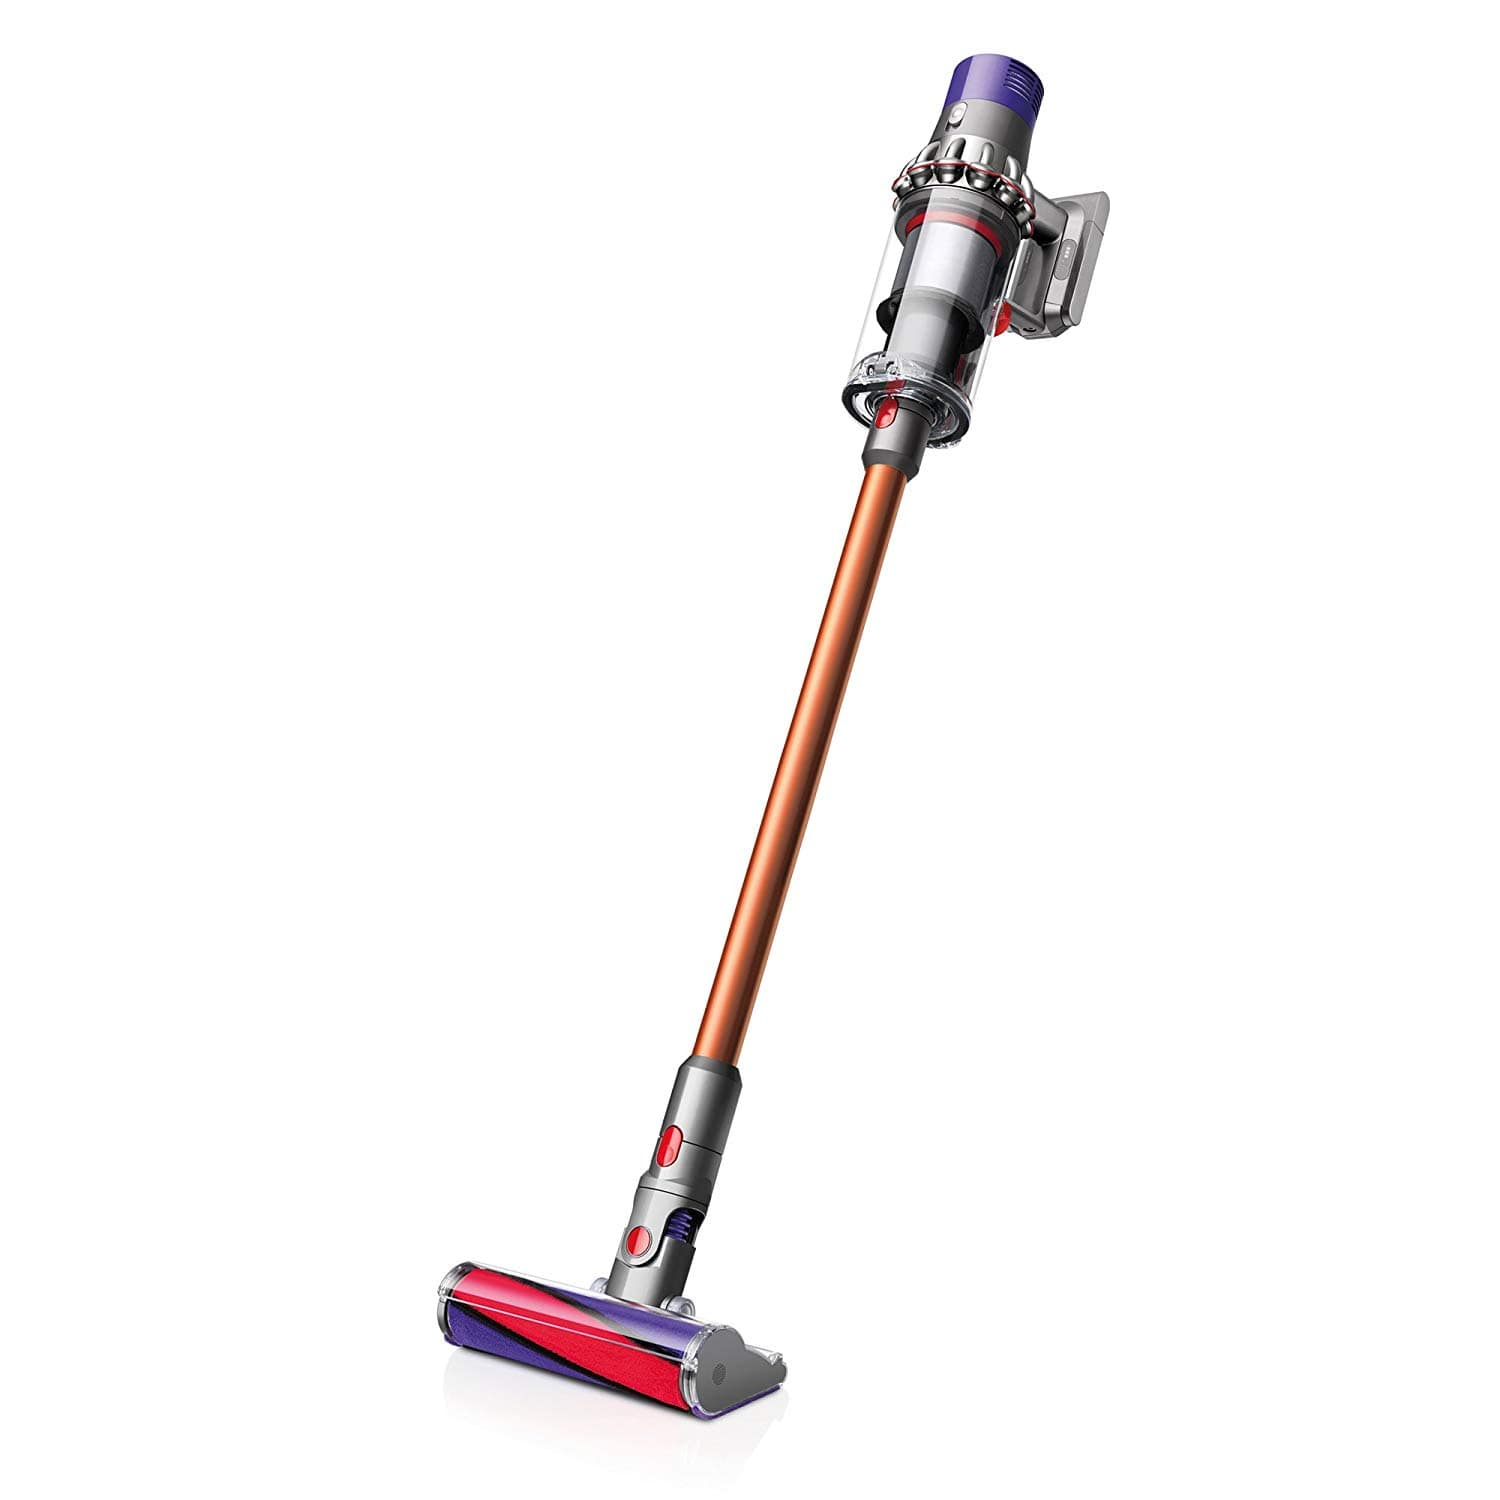 Dyson Cyclone V10 Absolute Lightweight Cordless Stick Vacuum Cleaner $336